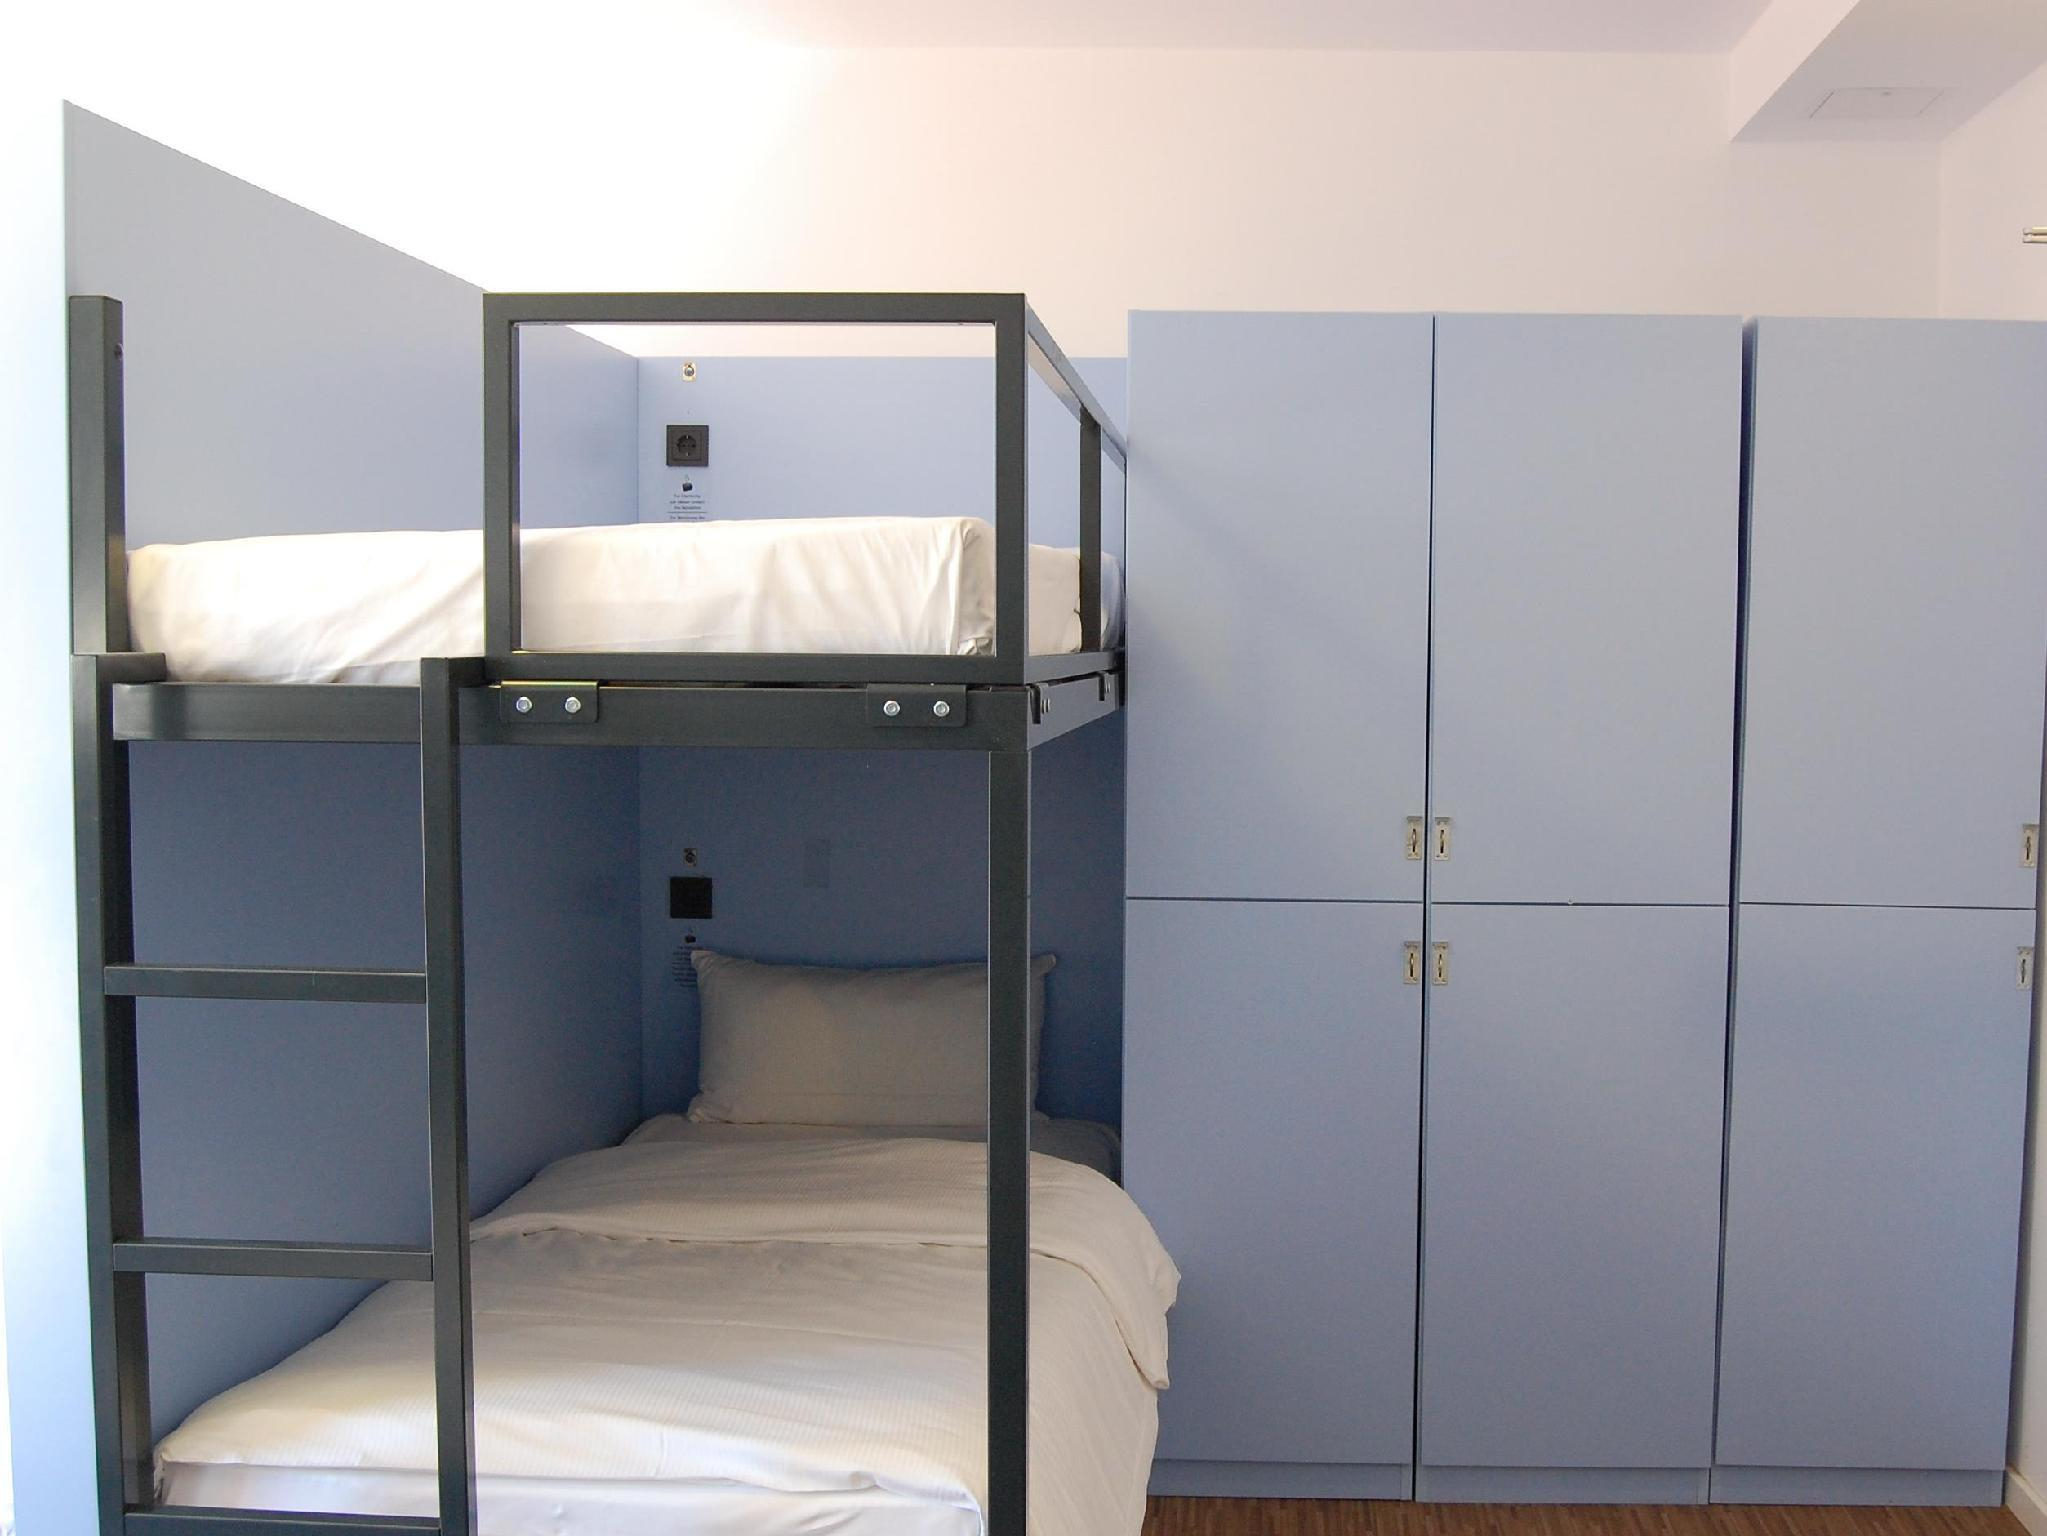 1 Letto in Dormitorio con 8 Letti (1 Bed in a 8-Bed room)